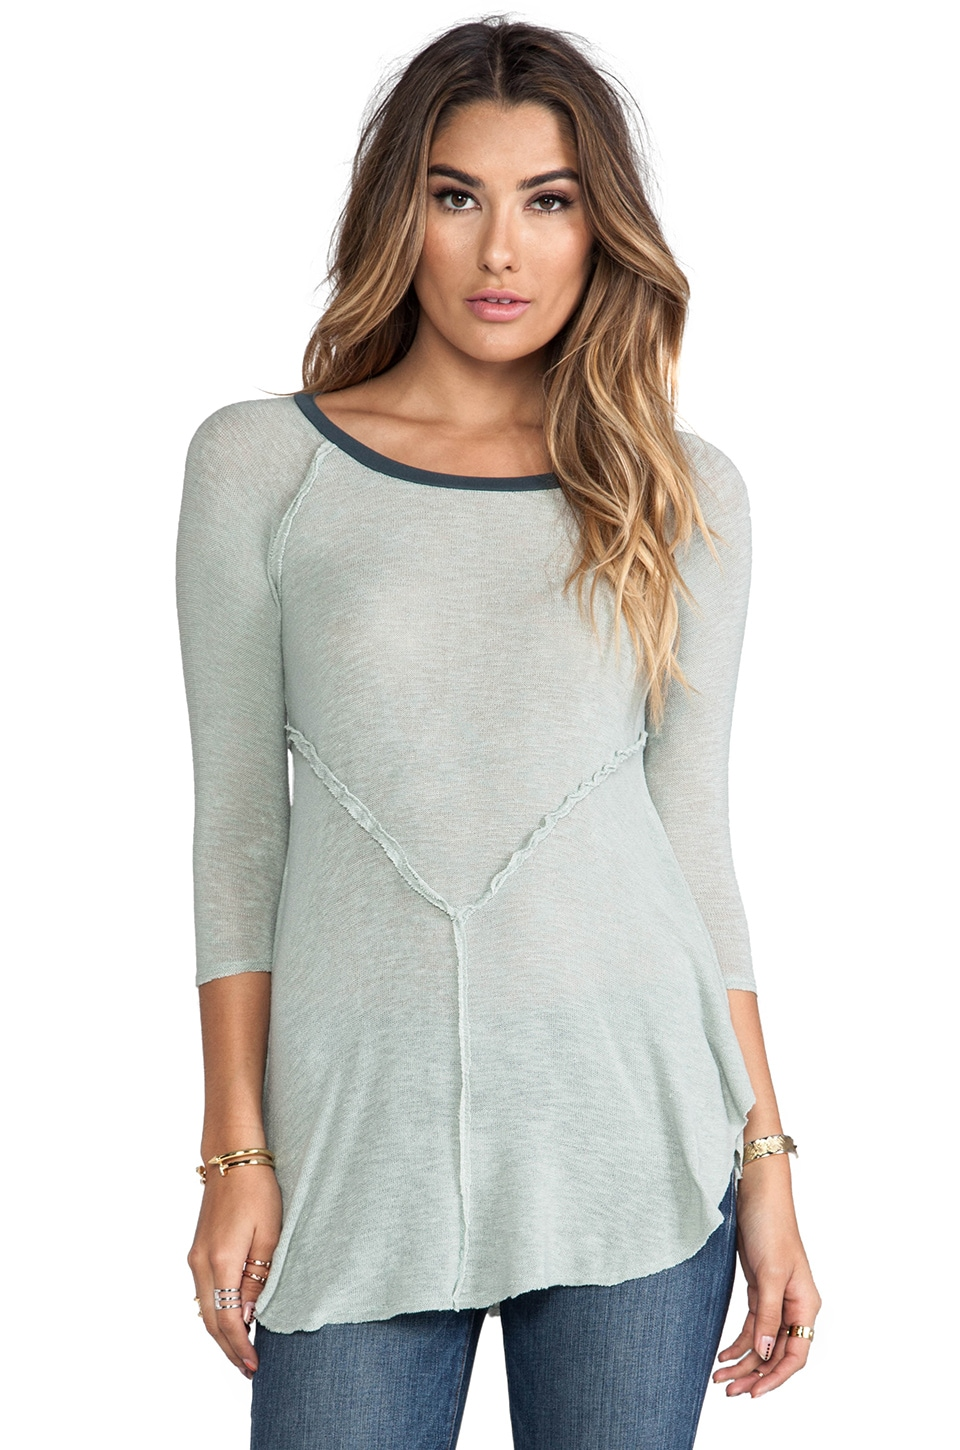 Free People Weekends Layering Top in Sea Spray